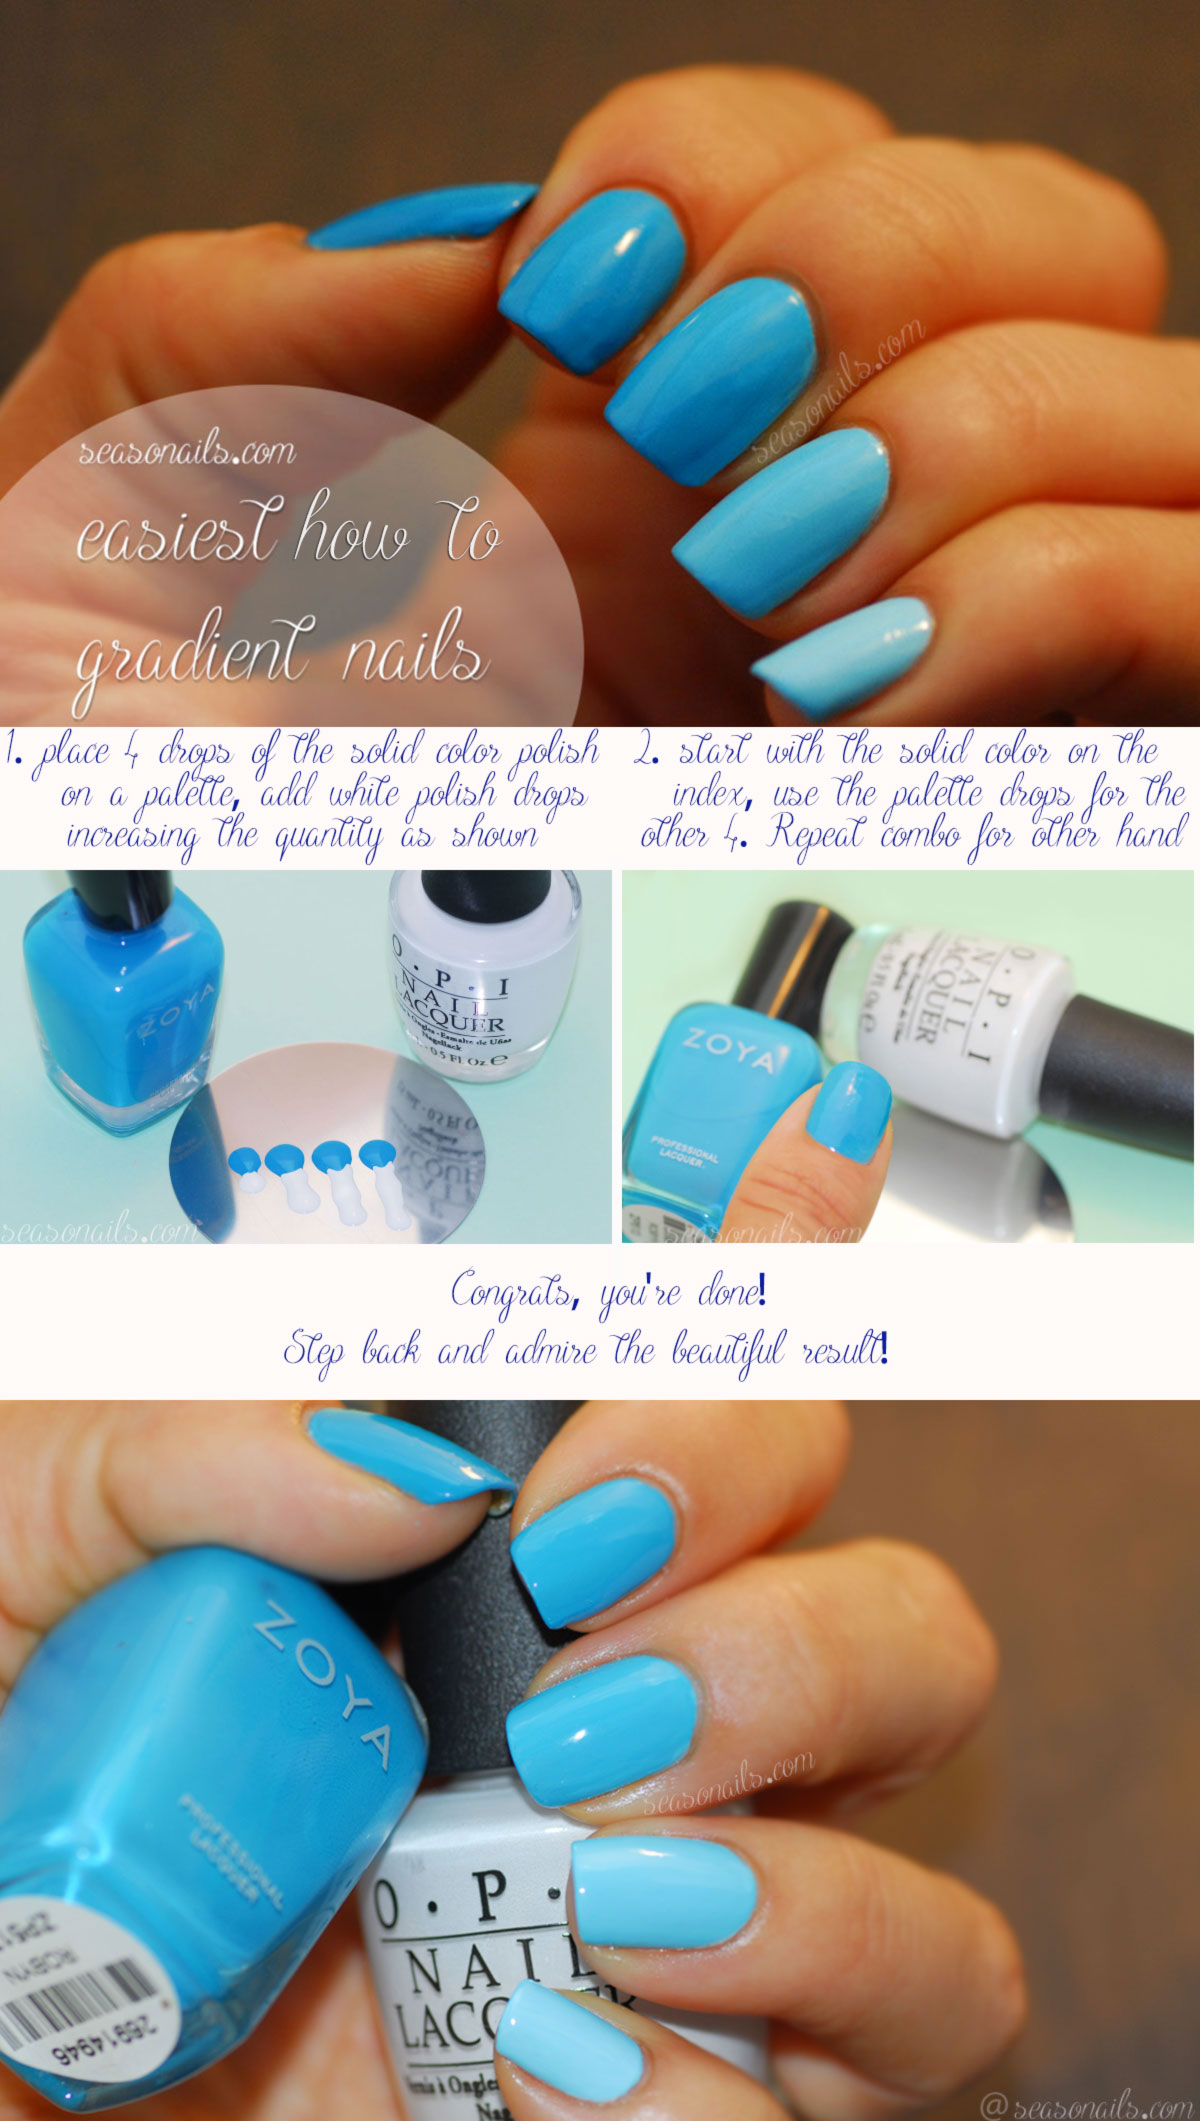 Easiest Gradient Nails Manicure Ever! - Seasonails